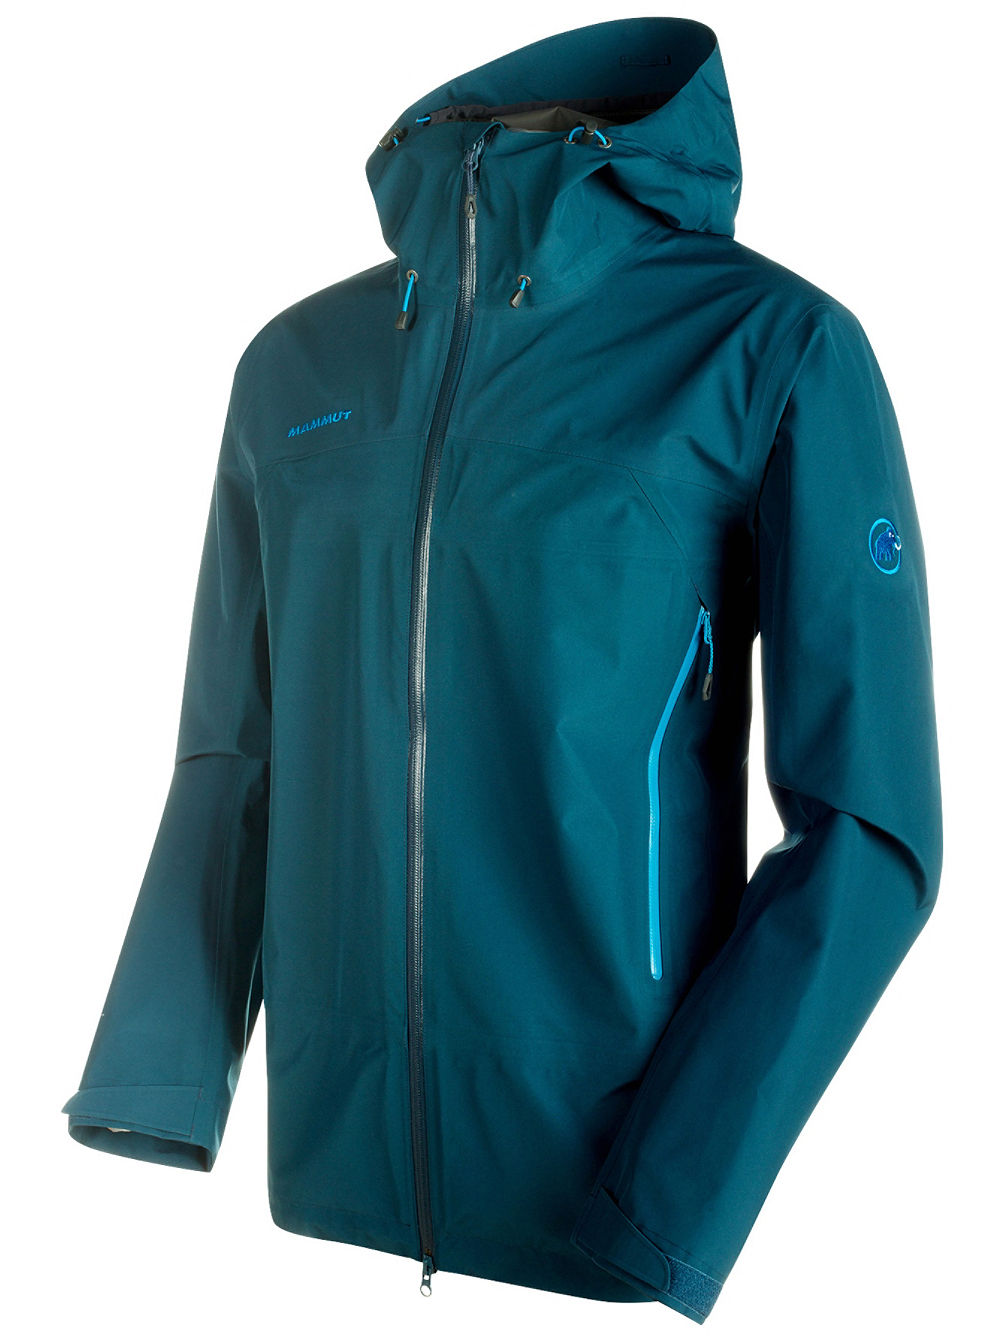 Convey Outdoor Jacket